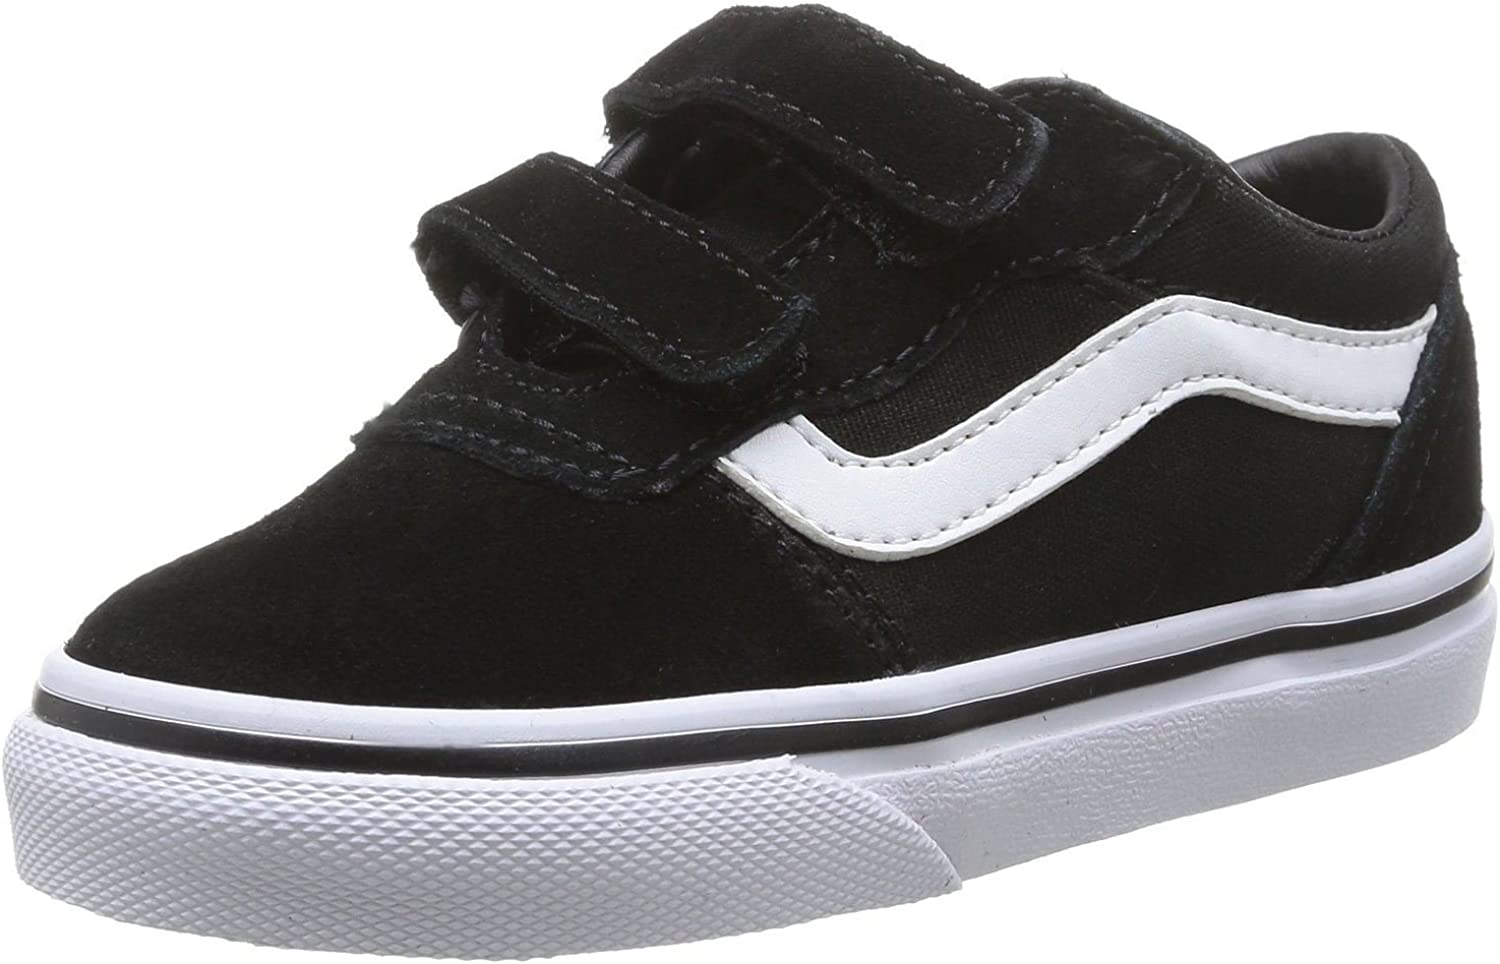 Indígena Dar permiso Rudyard Kipling  Vans Milton V Black White Toddlers Suede Velcro Trainers Shoes-9:  Amazon.co.uk: Shoes & Bags